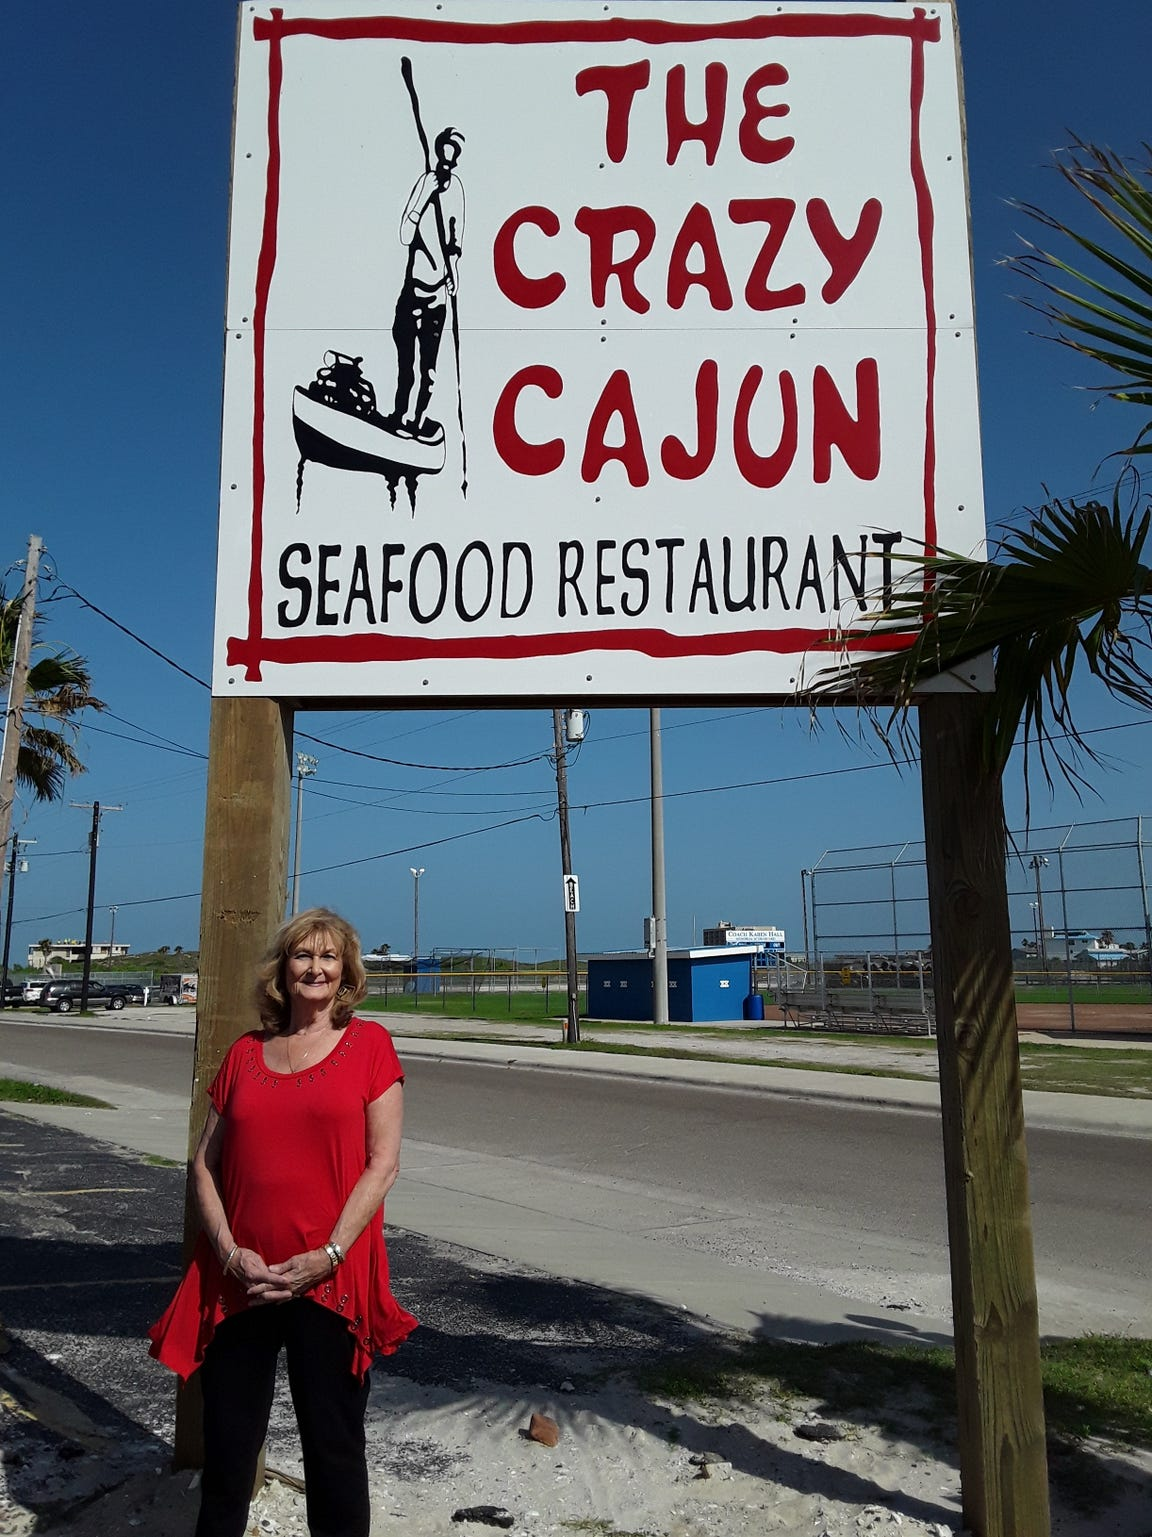 Phyllis Capps, owner of The Crazy Cajun, opened the